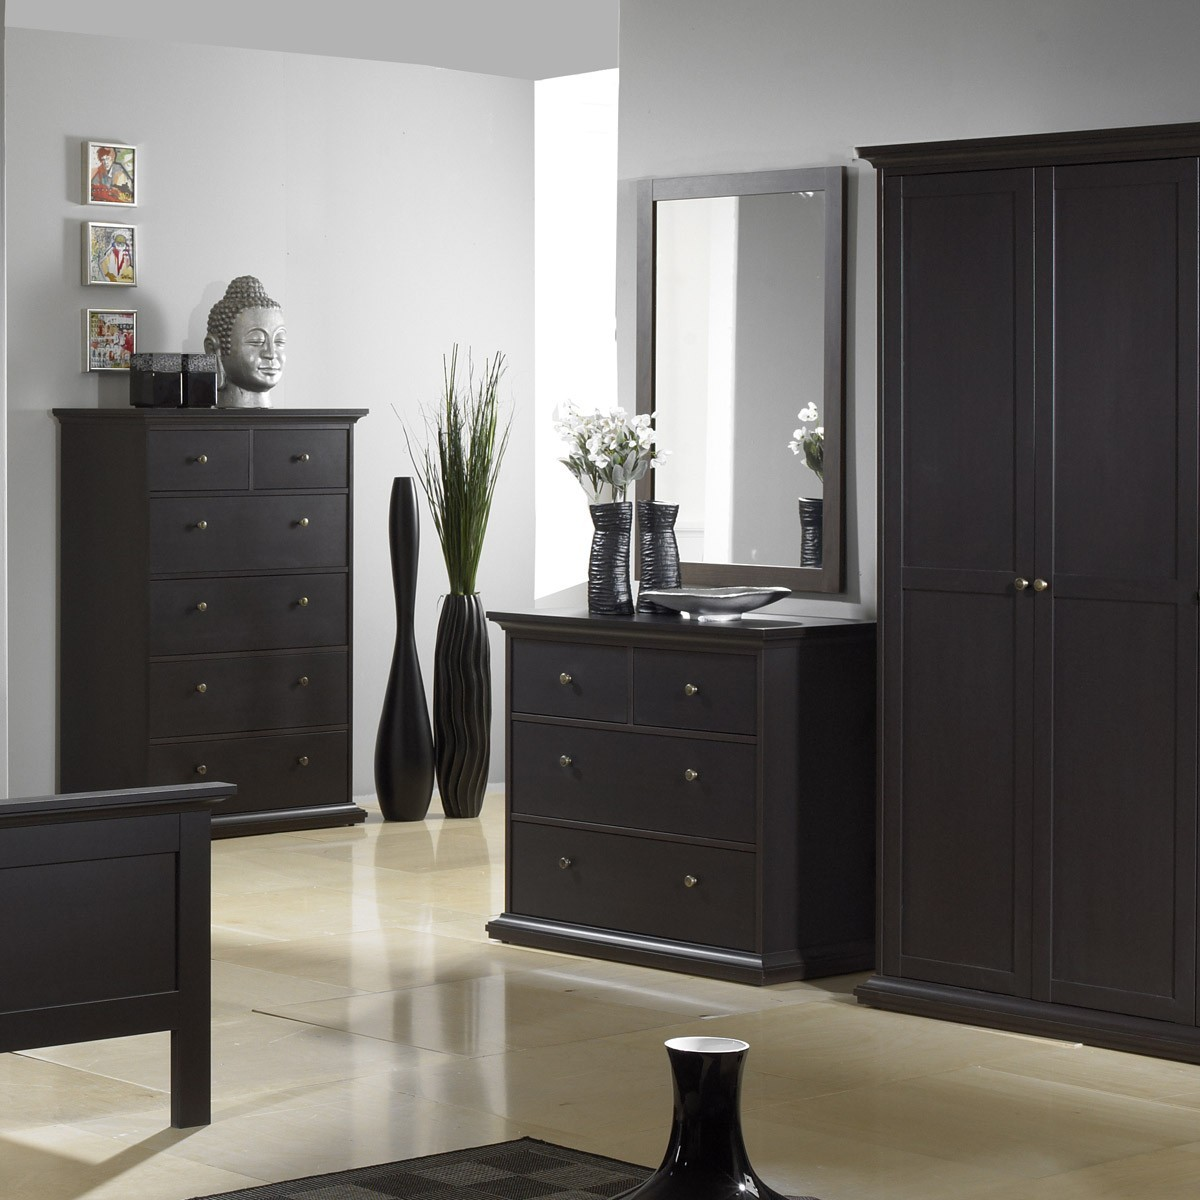 kleiderschrank schrank schlafzimmer venedig in braun holz teilmassiv ebay. Black Bedroom Furniture Sets. Home Design Ideas